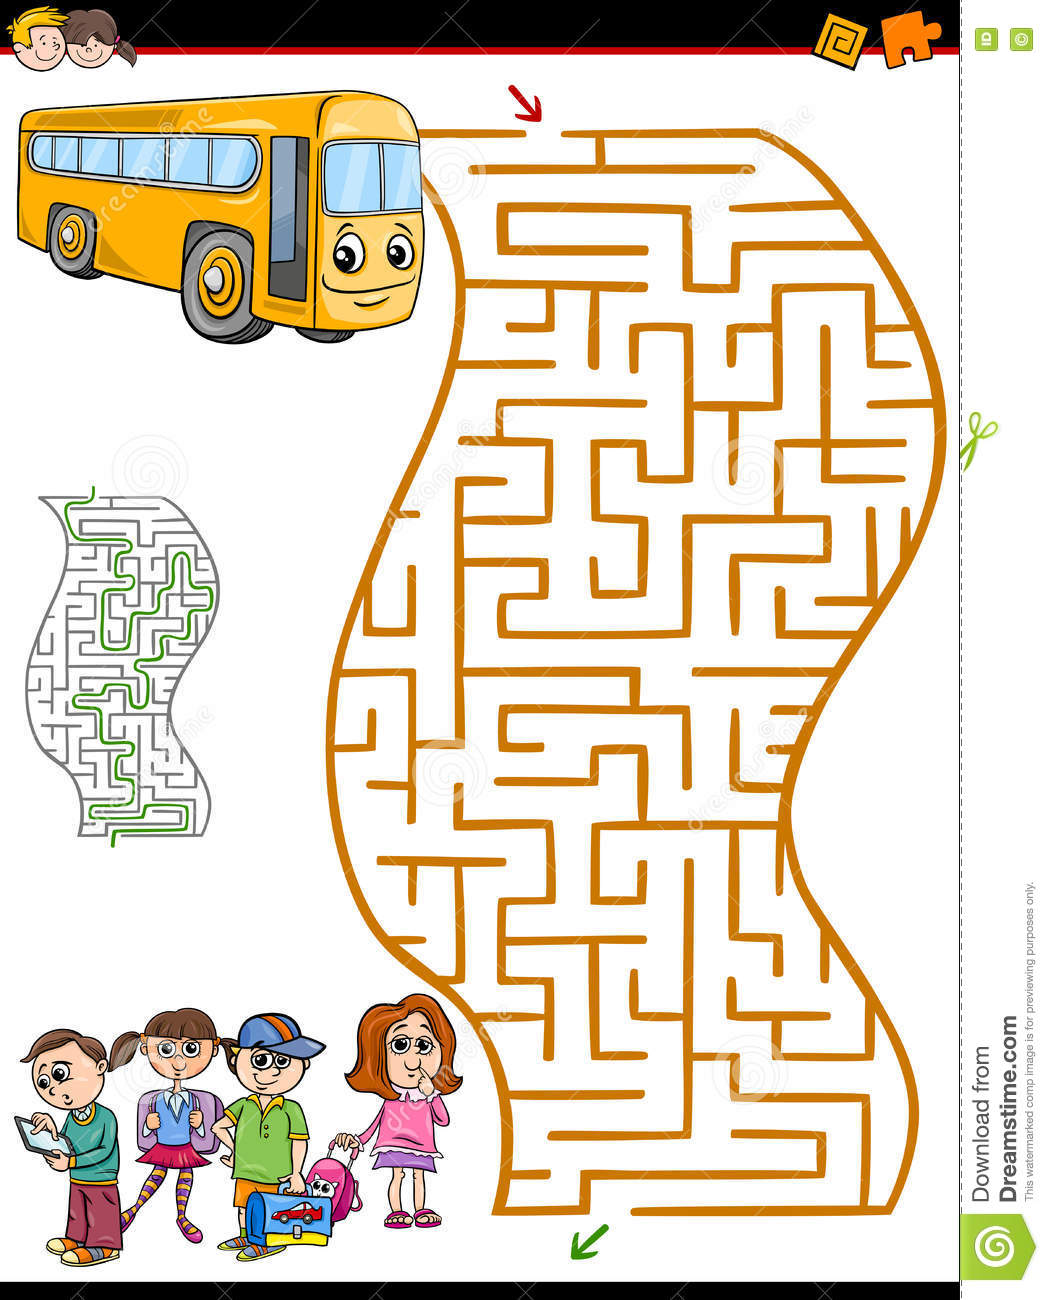 Maze Or Labyrinth Activity For Kids Stock Vector